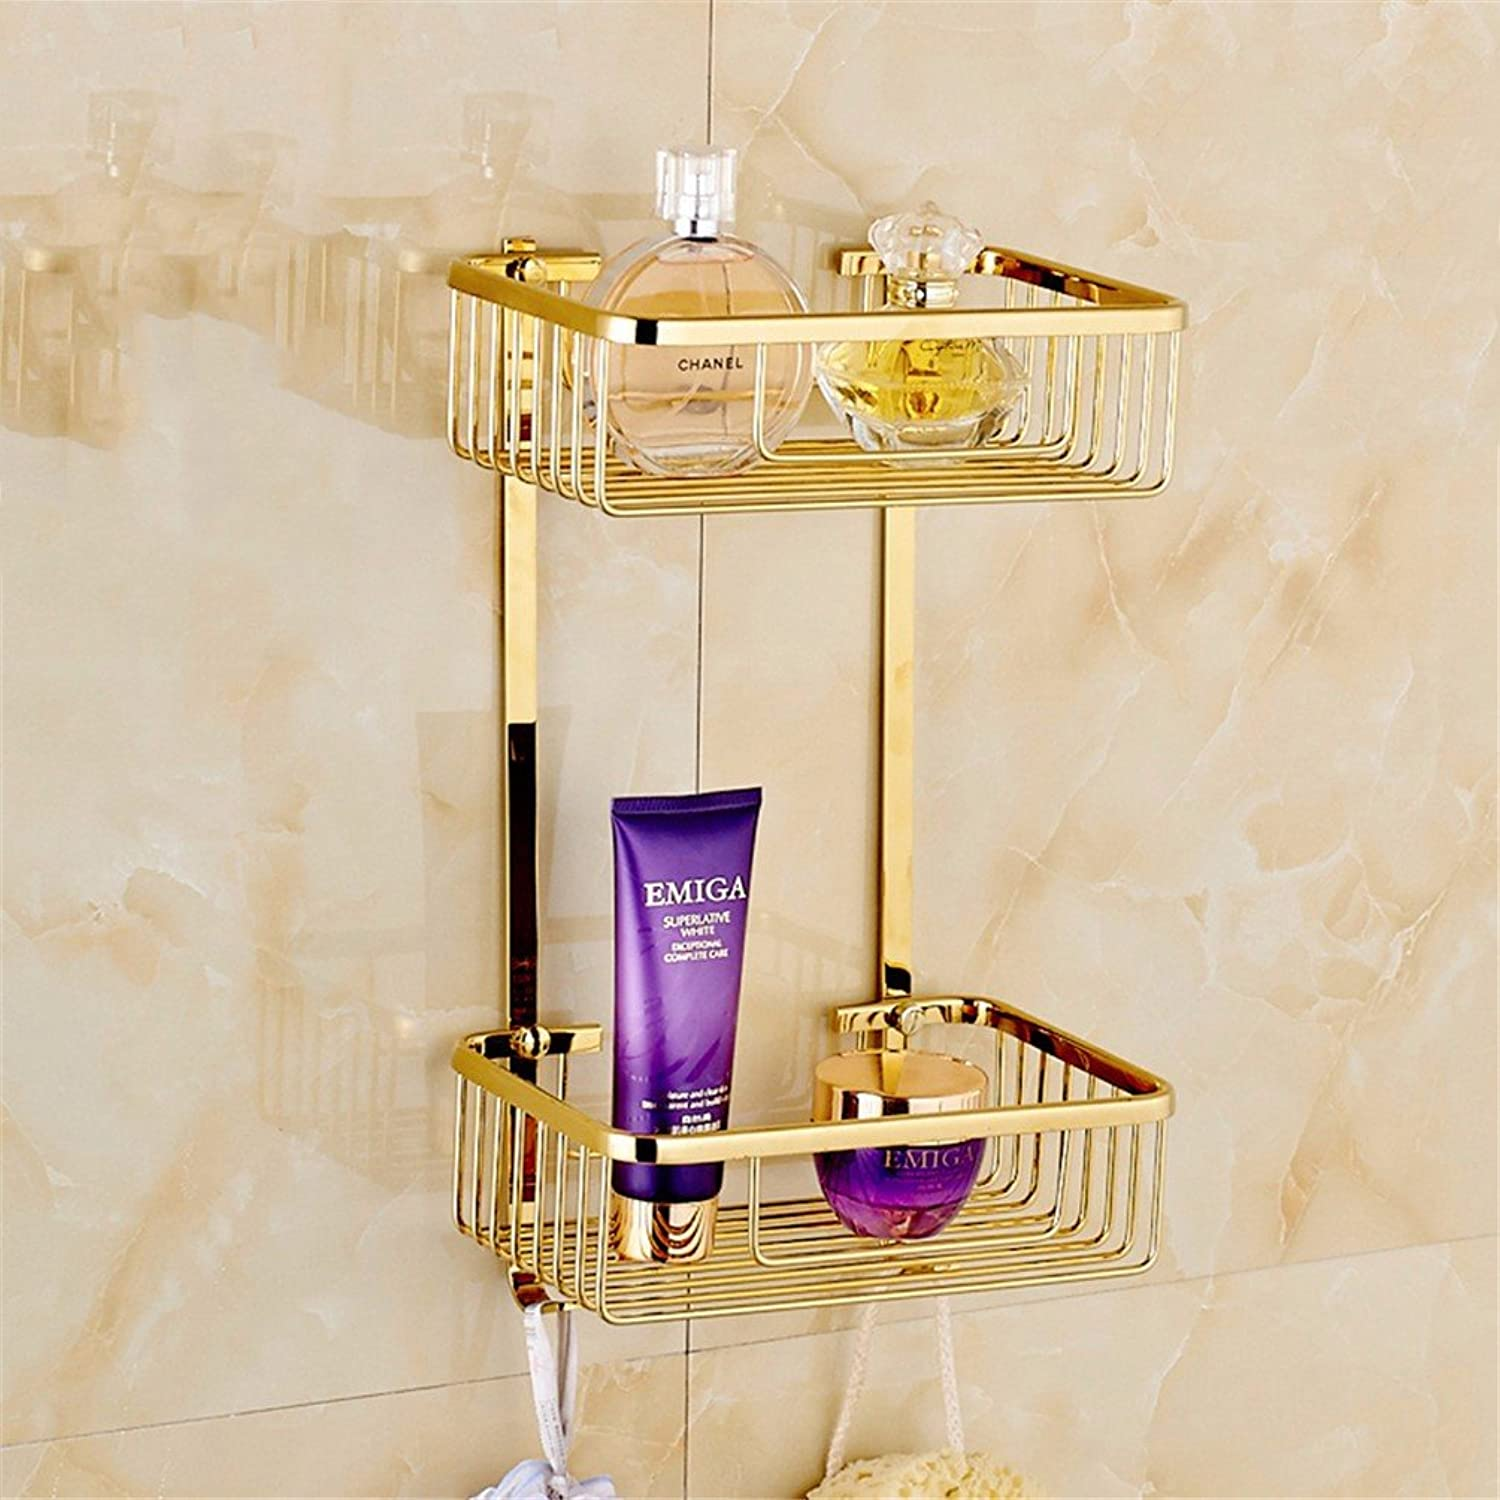 LAONA Euro-copper gold Bathroom Wall is a built-in shelf toilet paper holder Toilet brush, the built-in basket B2